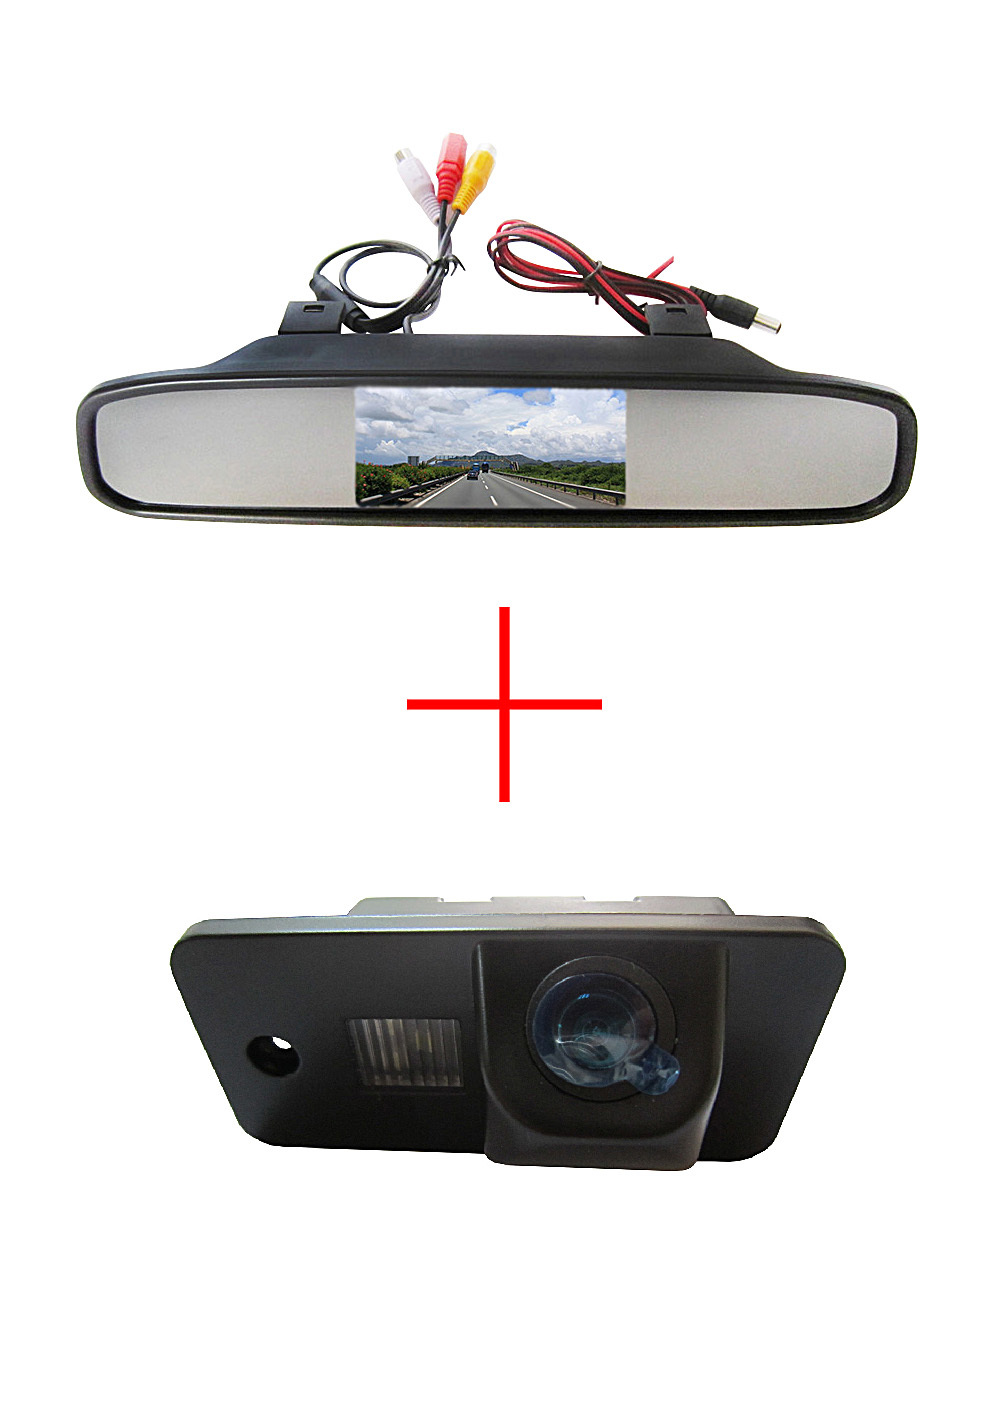 Color CCD Car rear view camera AUDI A3 S3 A4 S4 A6 A6L S6 A8 S8 RS4 RS6 Q7 4.3 Inch Rearview Mirror LCD Monitor DVD/VCR - Fuway HK Co., Ltd store